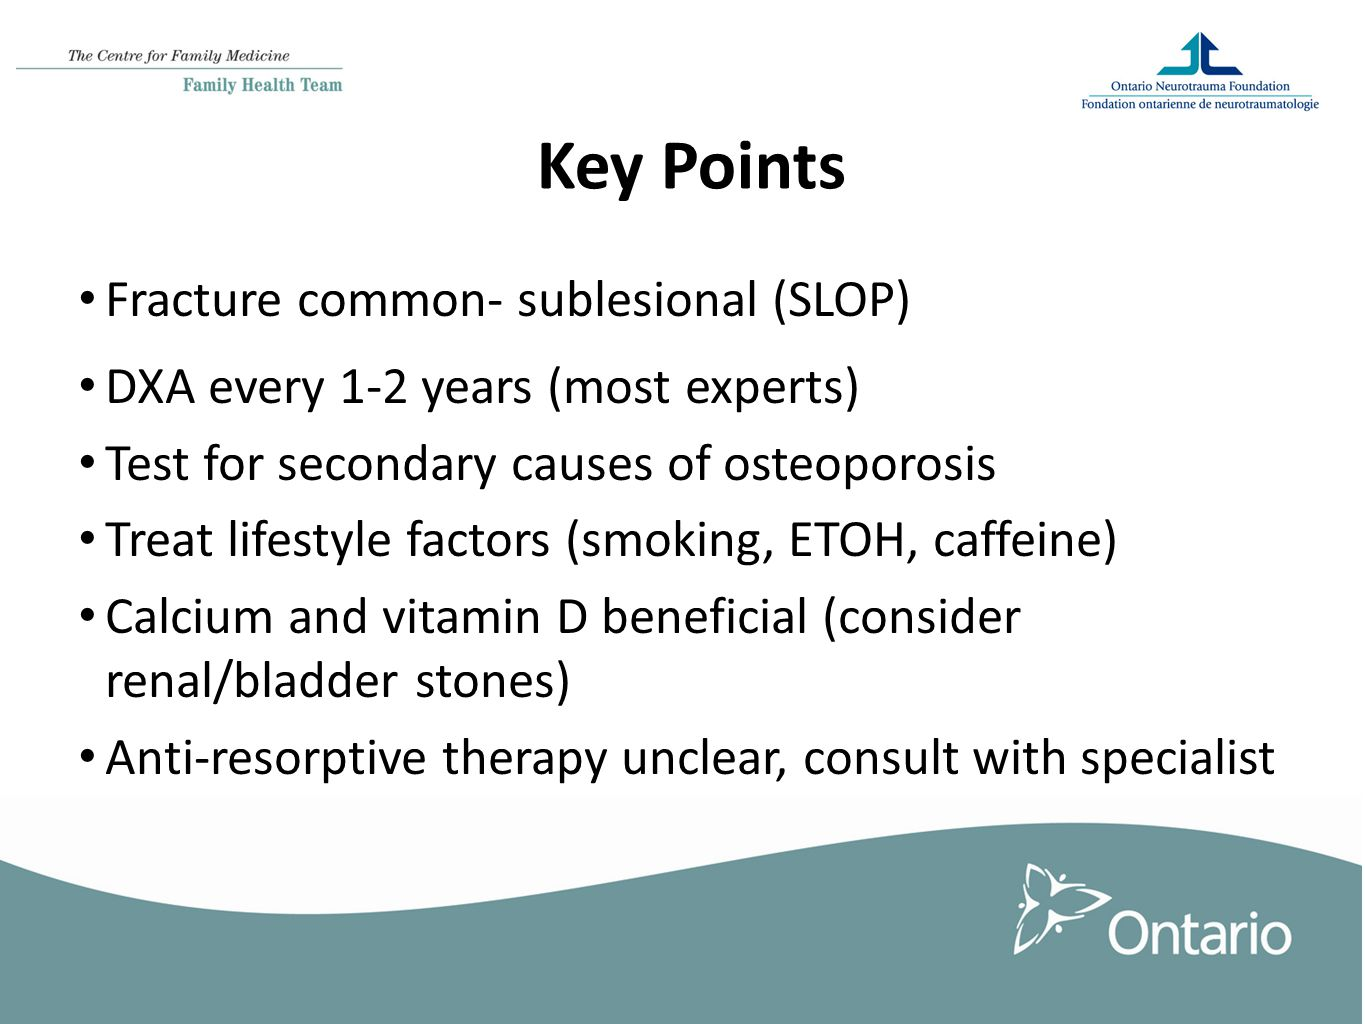 Key Points Fracture common- sublesional (SLOP) DXA every 1-2 years (most experts) Test for secondary causes of osteoporosis Treat lifestyle factors (smoking, ETOH, caffeine) Calcium and vitamin D beneficial (consider renal/bladder stones) Anti-resorptive therapy unclear, consult with specialist